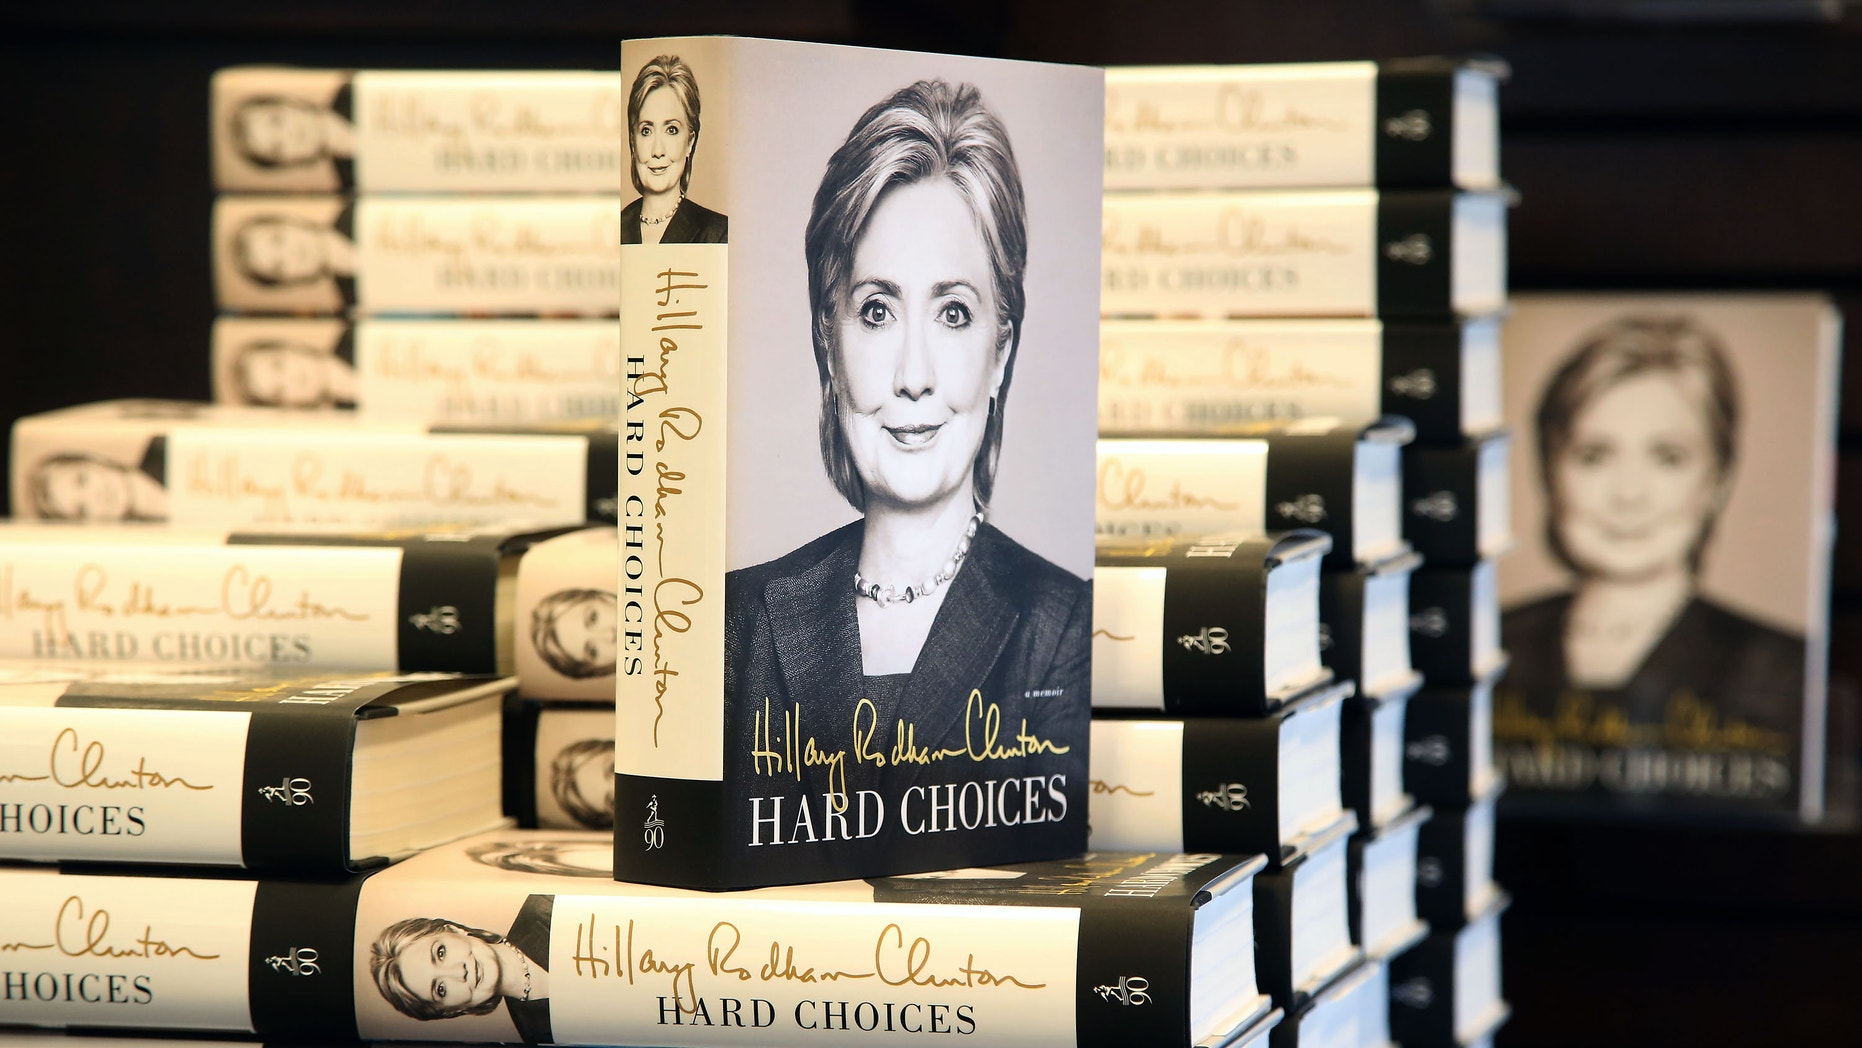 """June 19, 2014 - Former Secretary of State Hillary Rodham Clinton's new book """"Hard Choices,"""" on her time as President Barack Obama's top diplomat, on sale at a book signing in Los Angeles."""